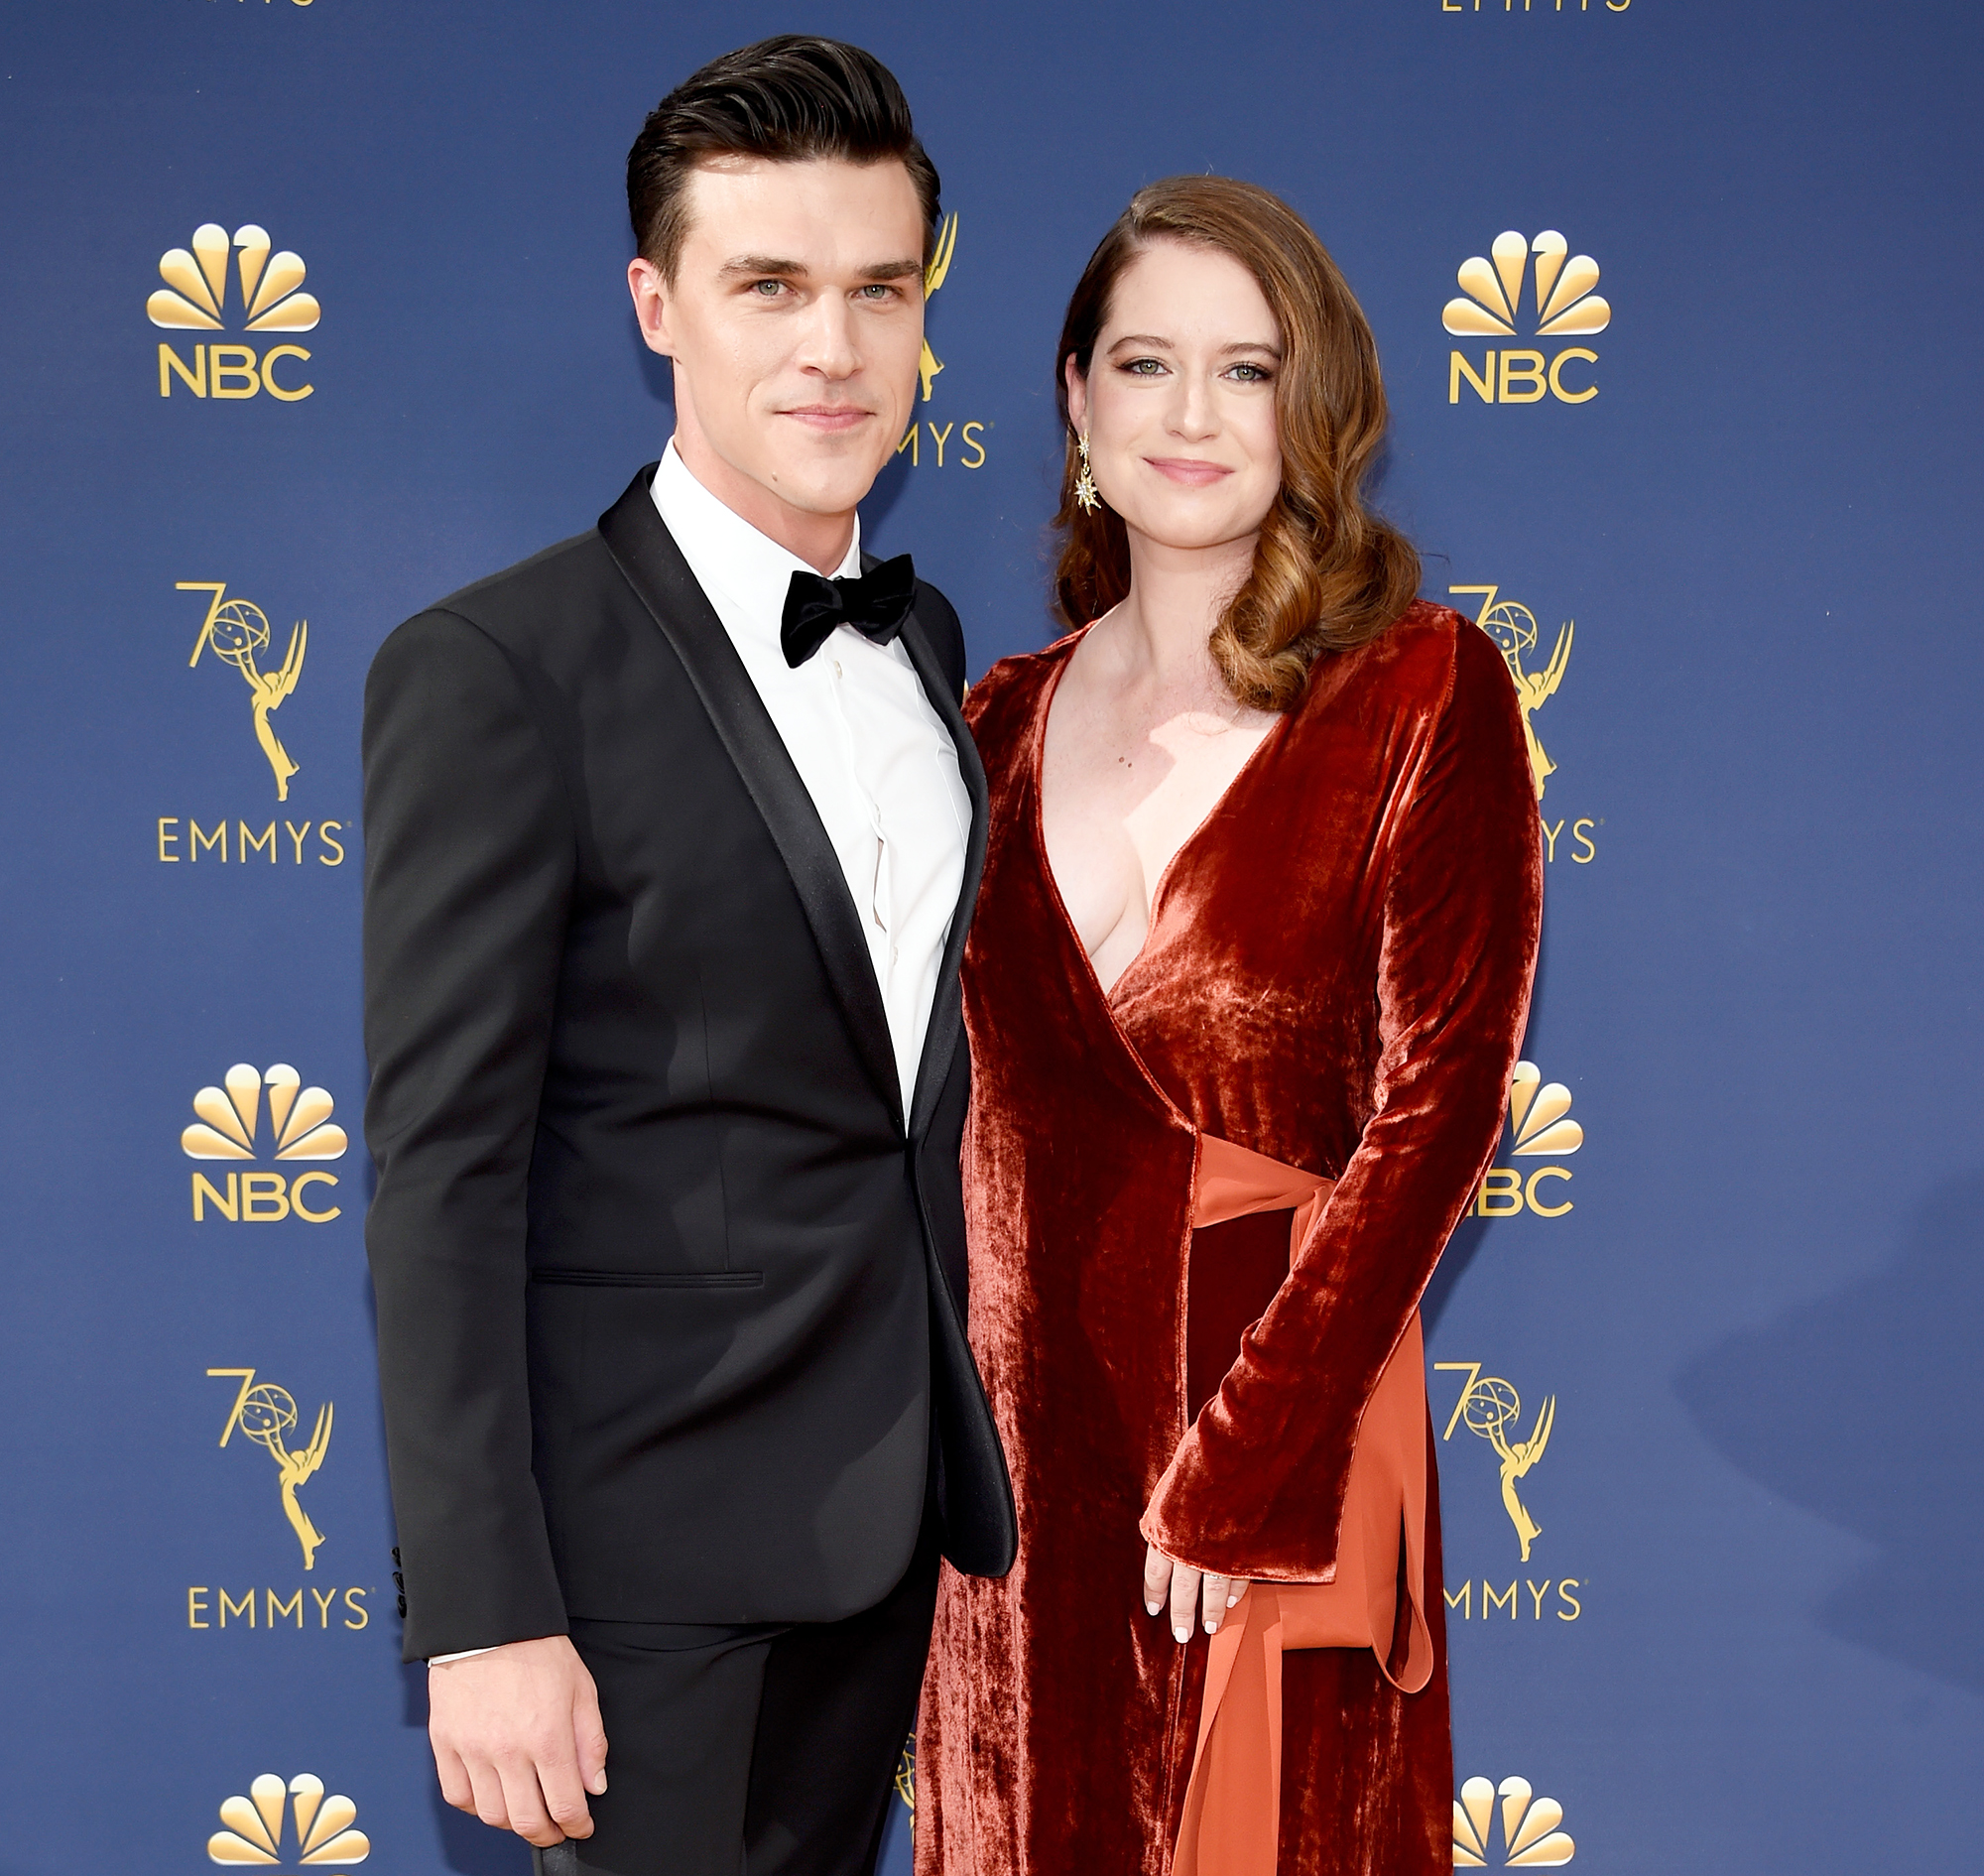 Finn Wittrock Sarah Roberts Pregnant - Finn Wittrock and Sarah Roberts attend the 70th Emmy Awards at Microsoft Theater on September 17, 2018 in Los Angeles, California.